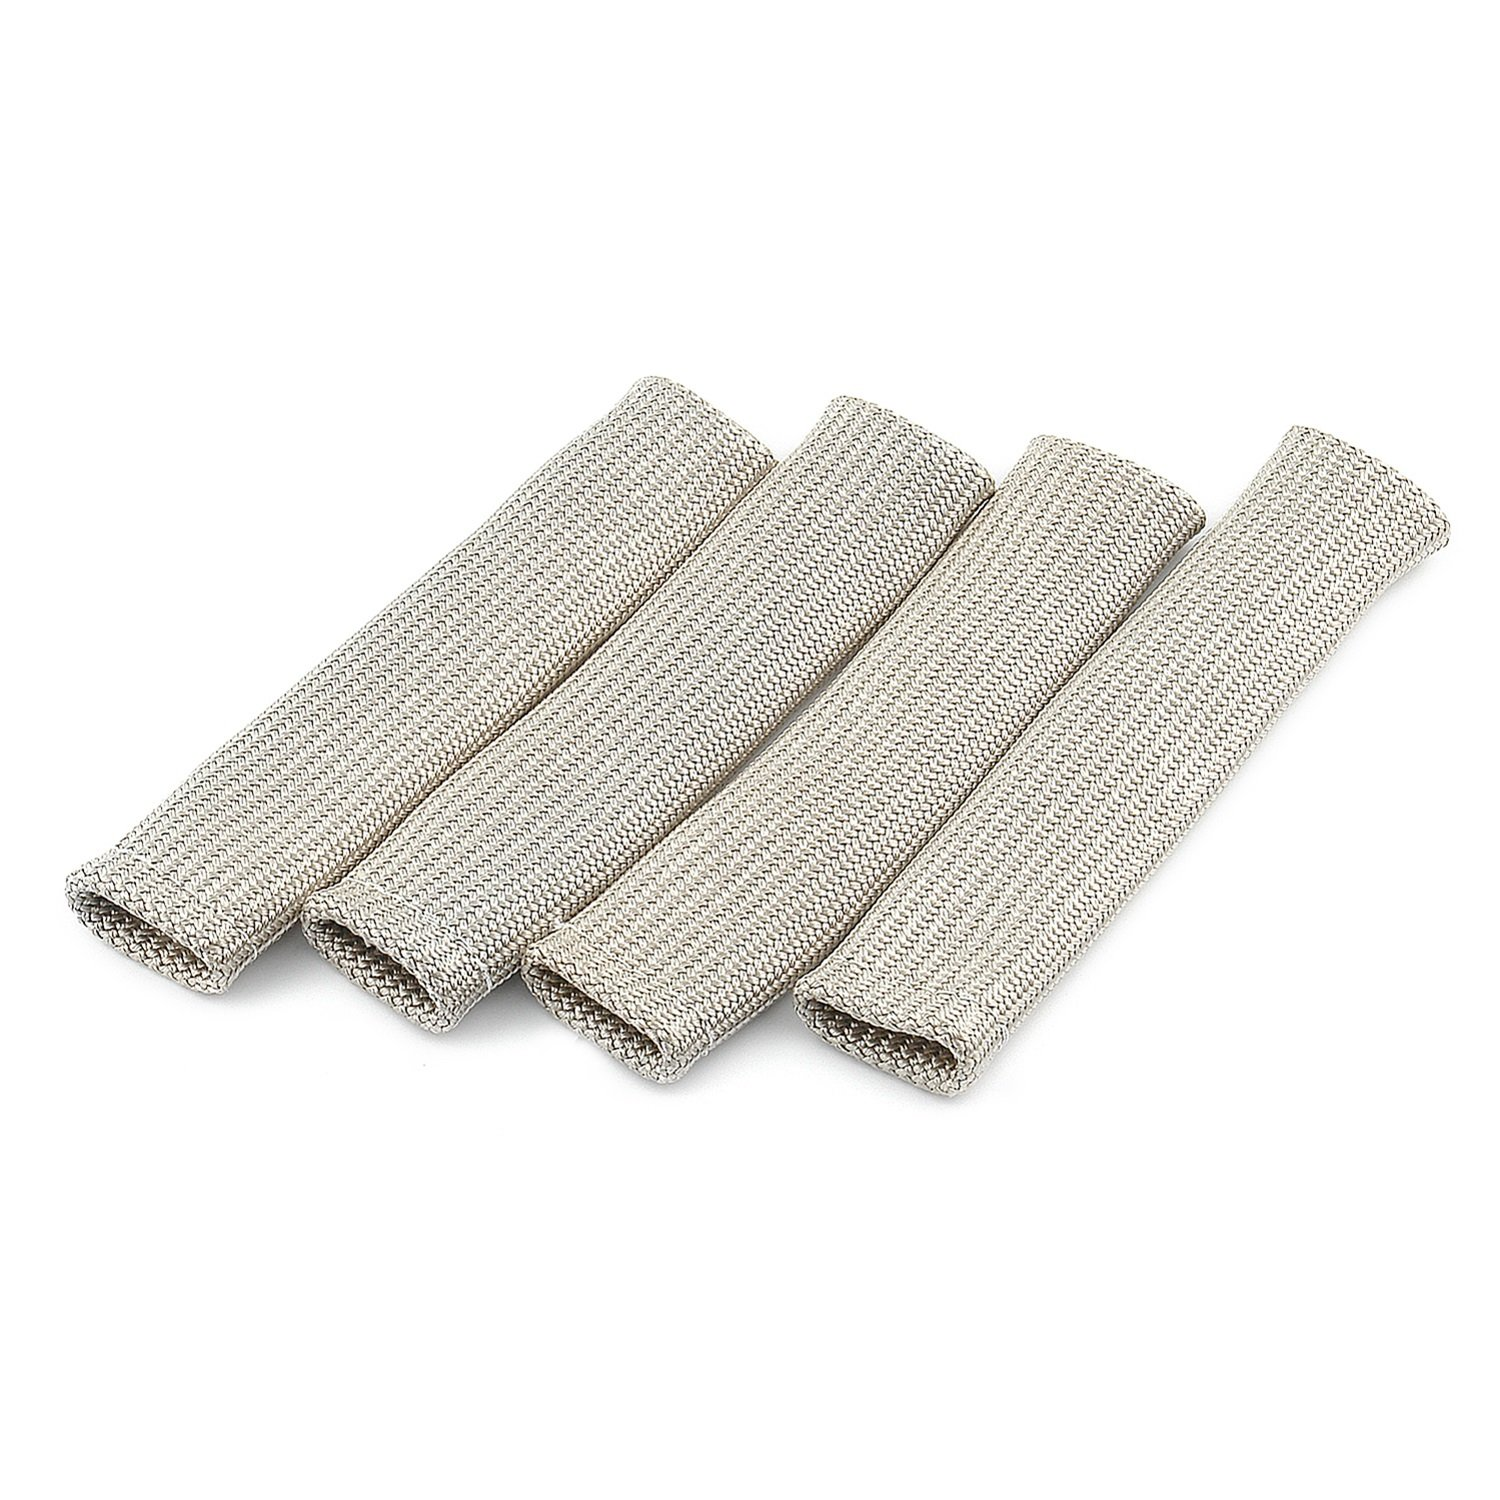 Fiberglass Spark Plug Wire Boot Protectors Heat Shield ACCEL 170086 Pro Sleeve Boot Guards 4 Pack ACC 170086